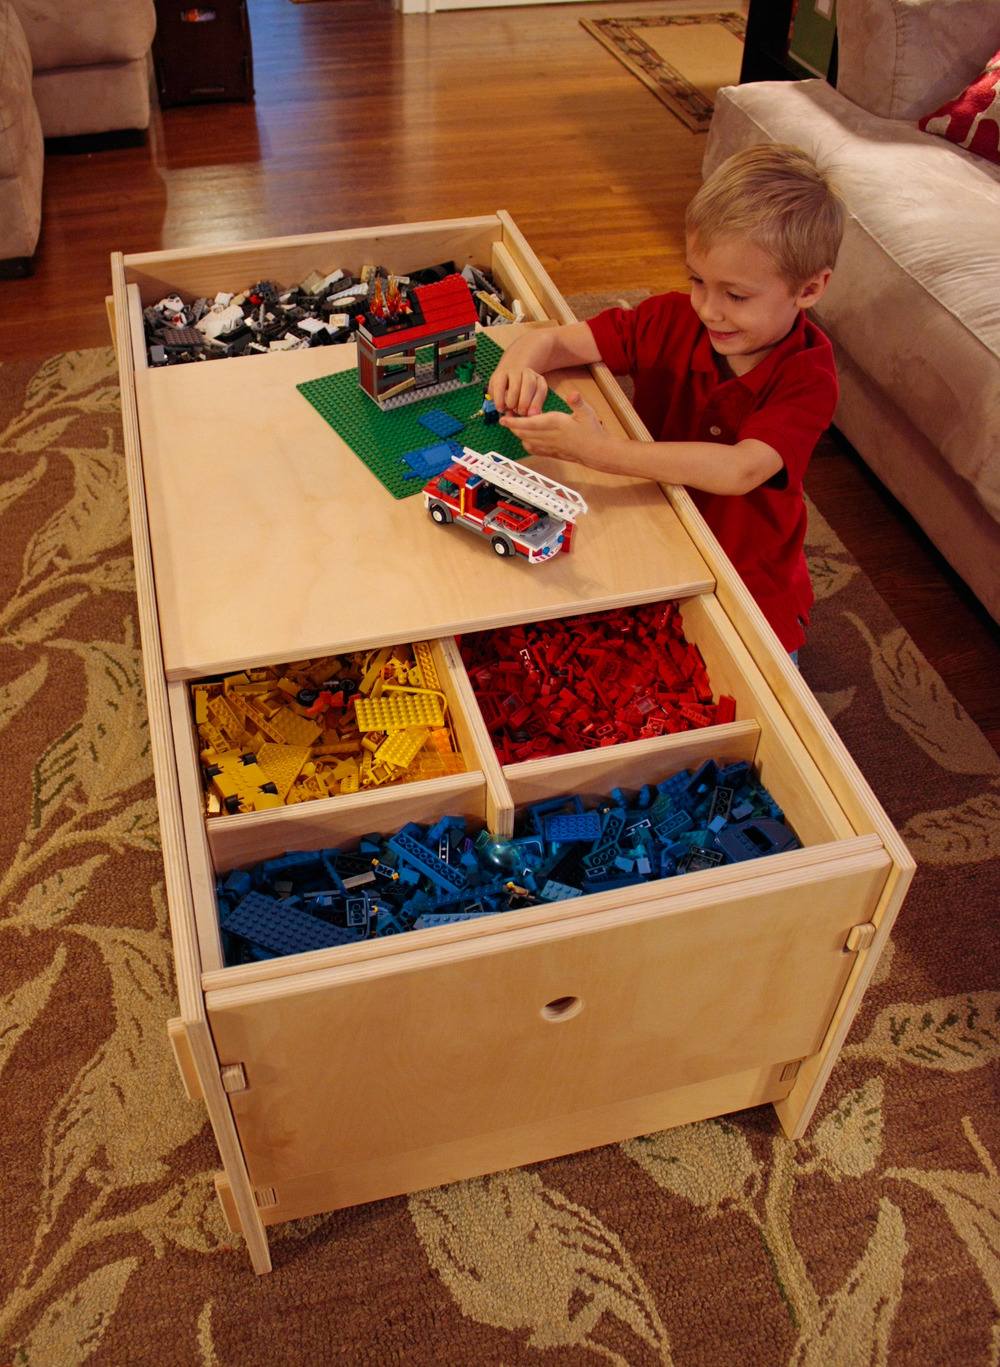 Lego Storage Table with Shelf - filled with Lego